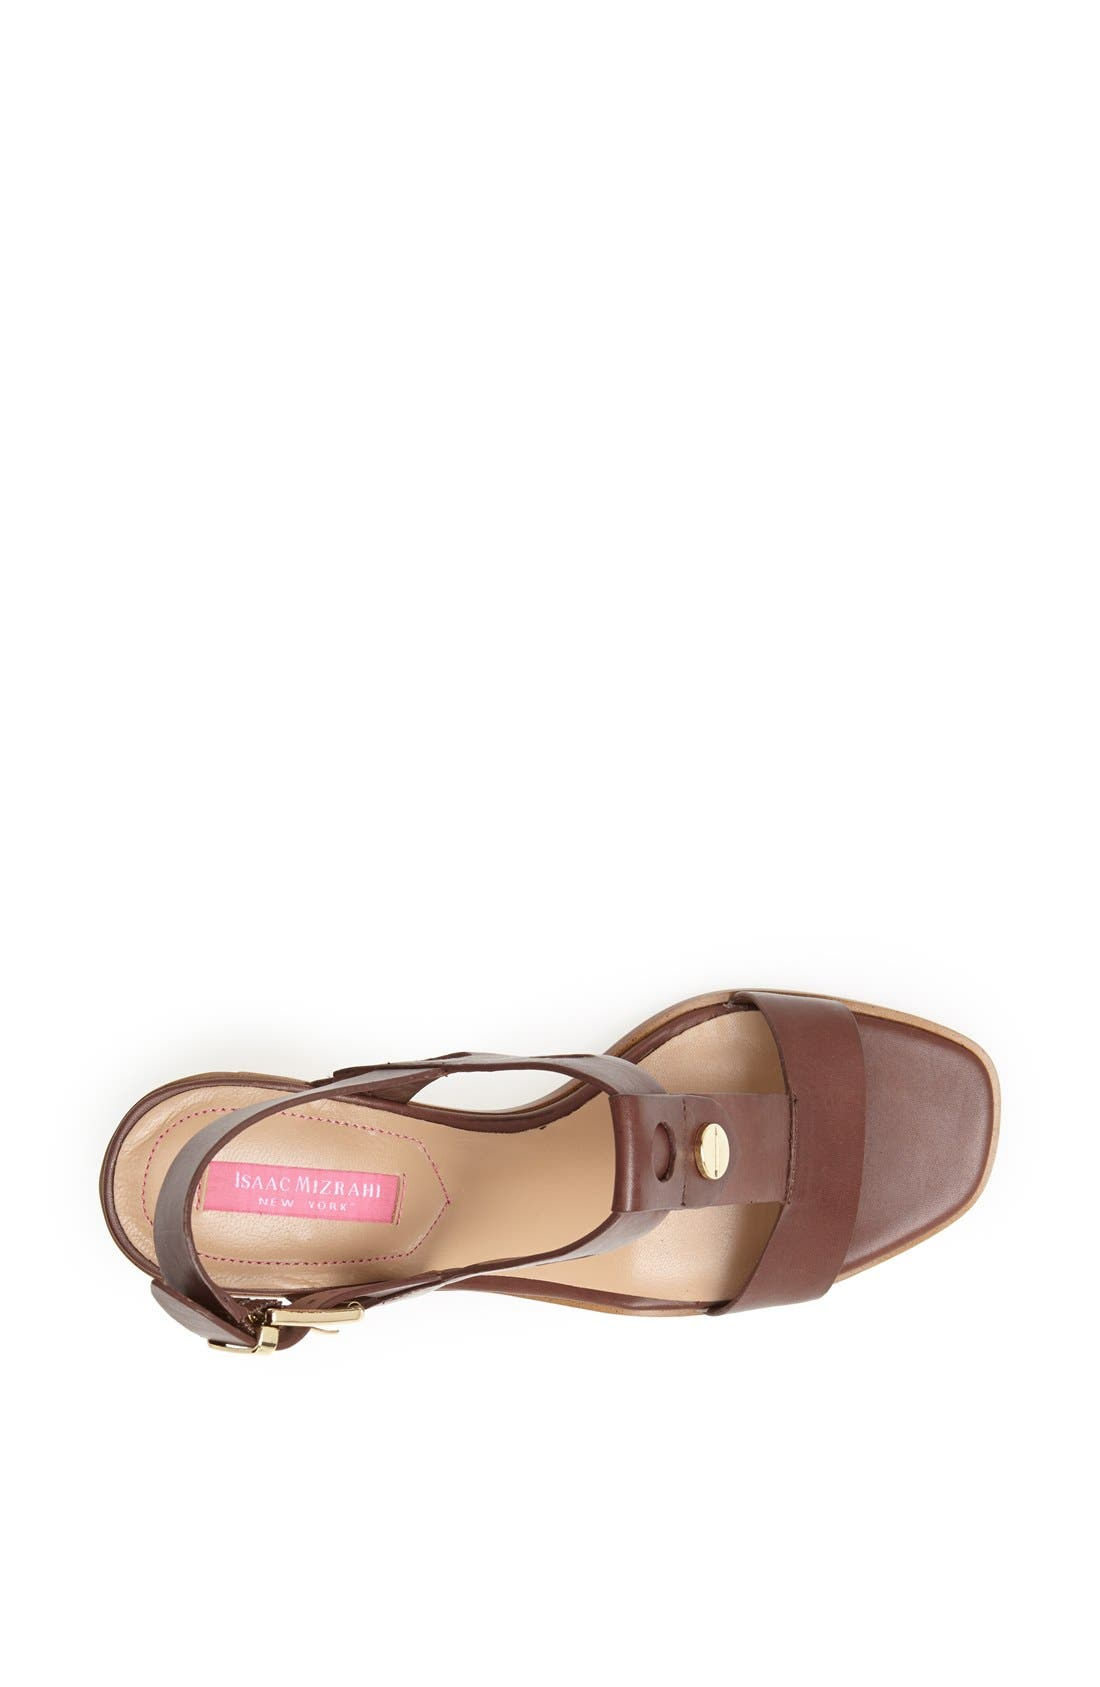 Alternate Image 3  - Isaac Mizrahi New York 'Sasha' Sandal